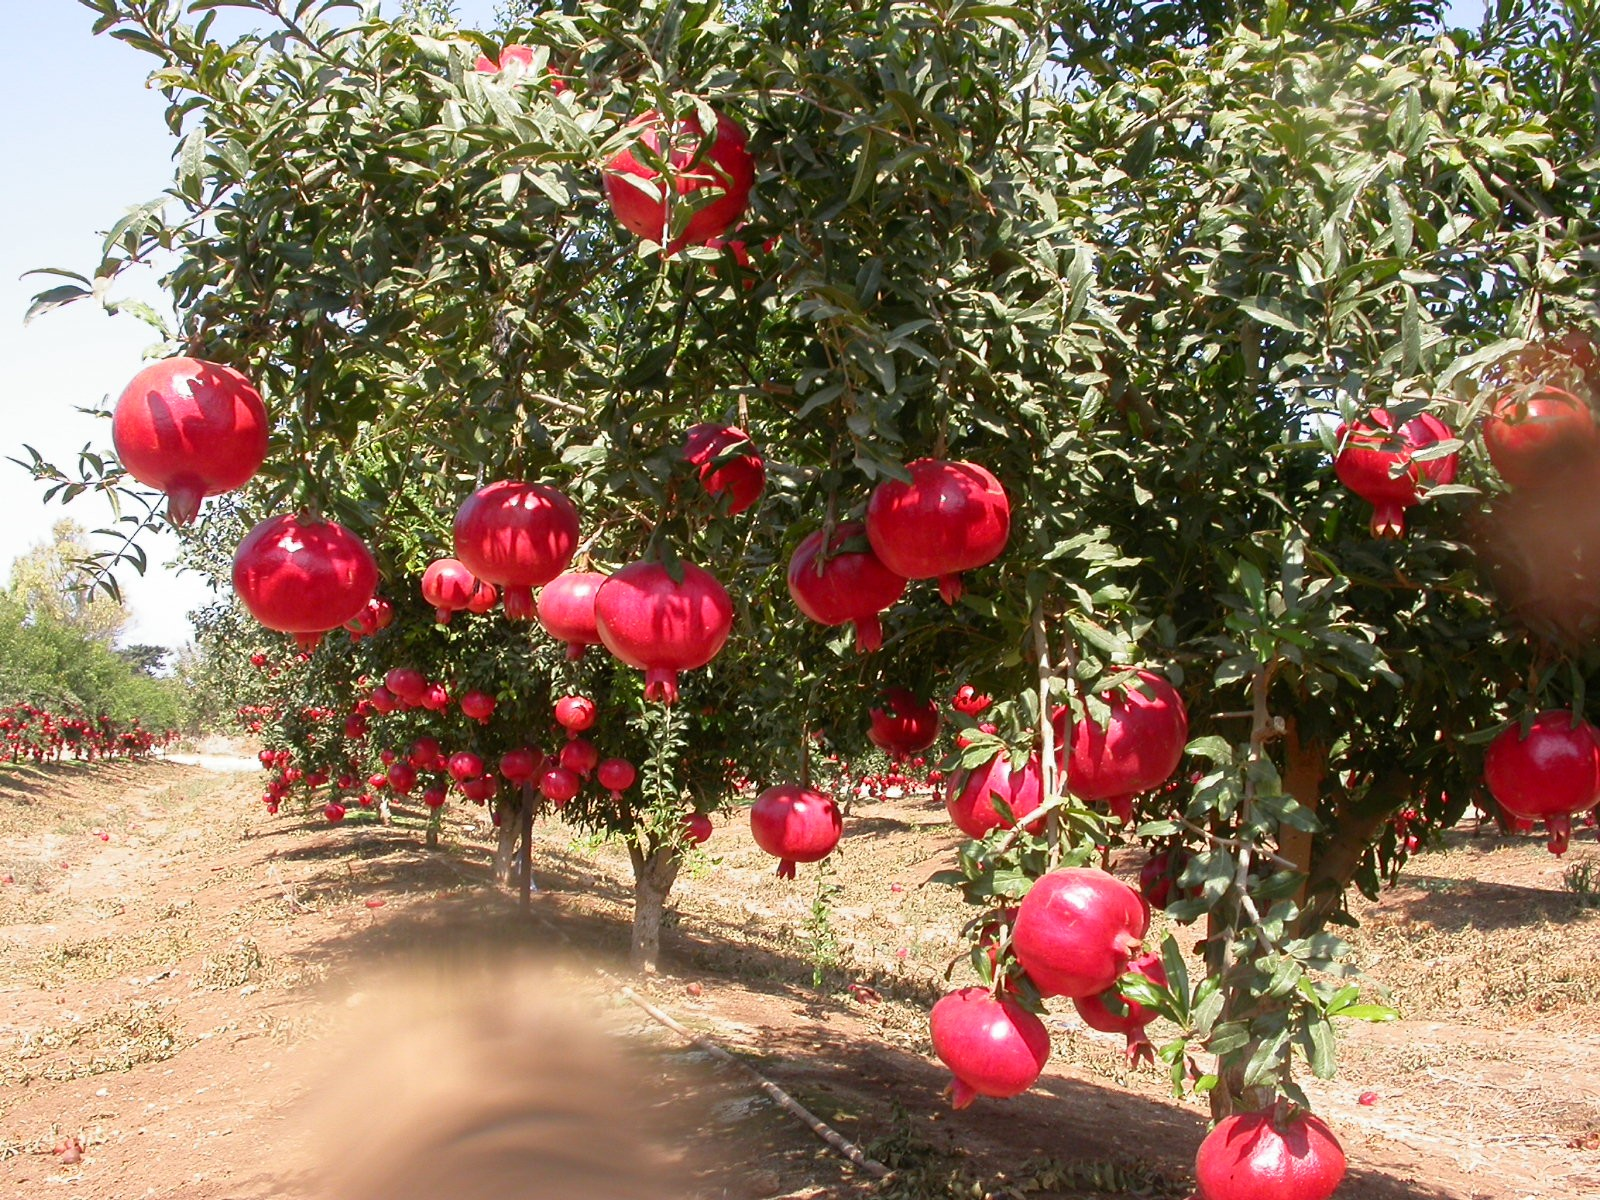 Pomegranate in Iranian Lifestyle | Iran Traveling Center